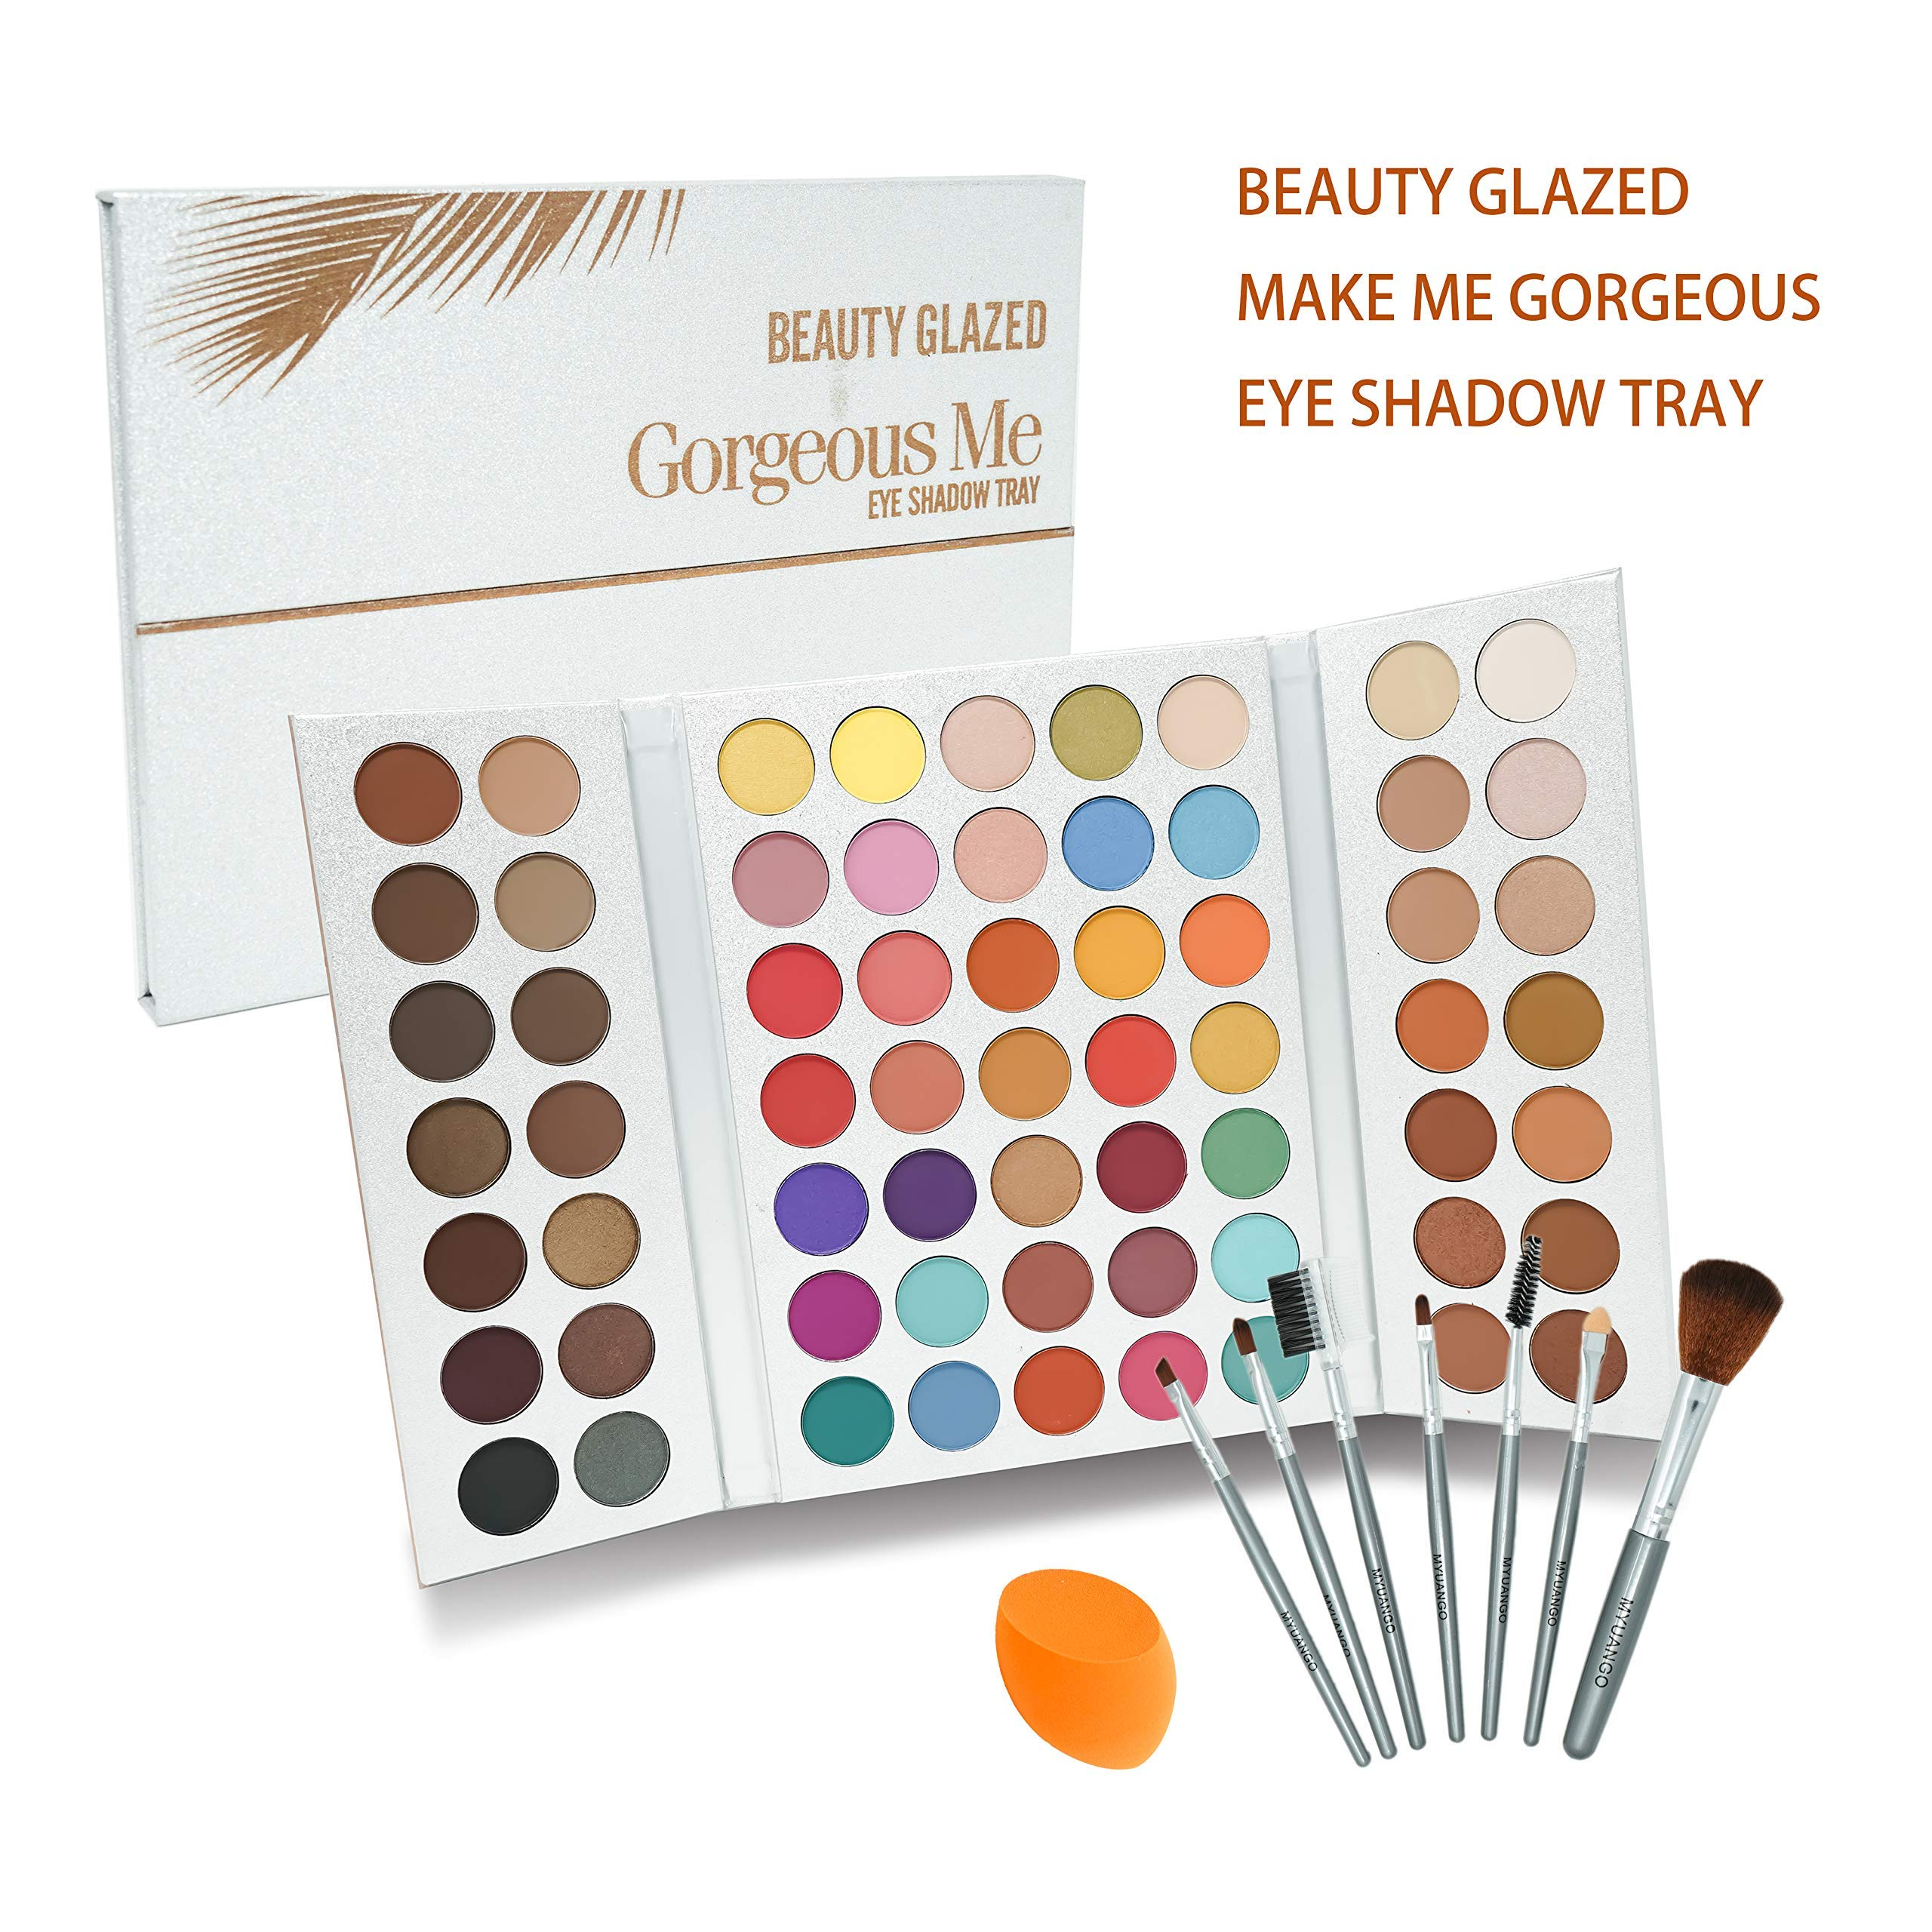 Beauty Glazed Make Up Palettes 63 Shades Eyeshadow Pigmented Matte Colors Long Stay On Soft and Smooth + Powder Sponge Blender + Make Up Brushes Set by Beauty Glazed (Image #3)